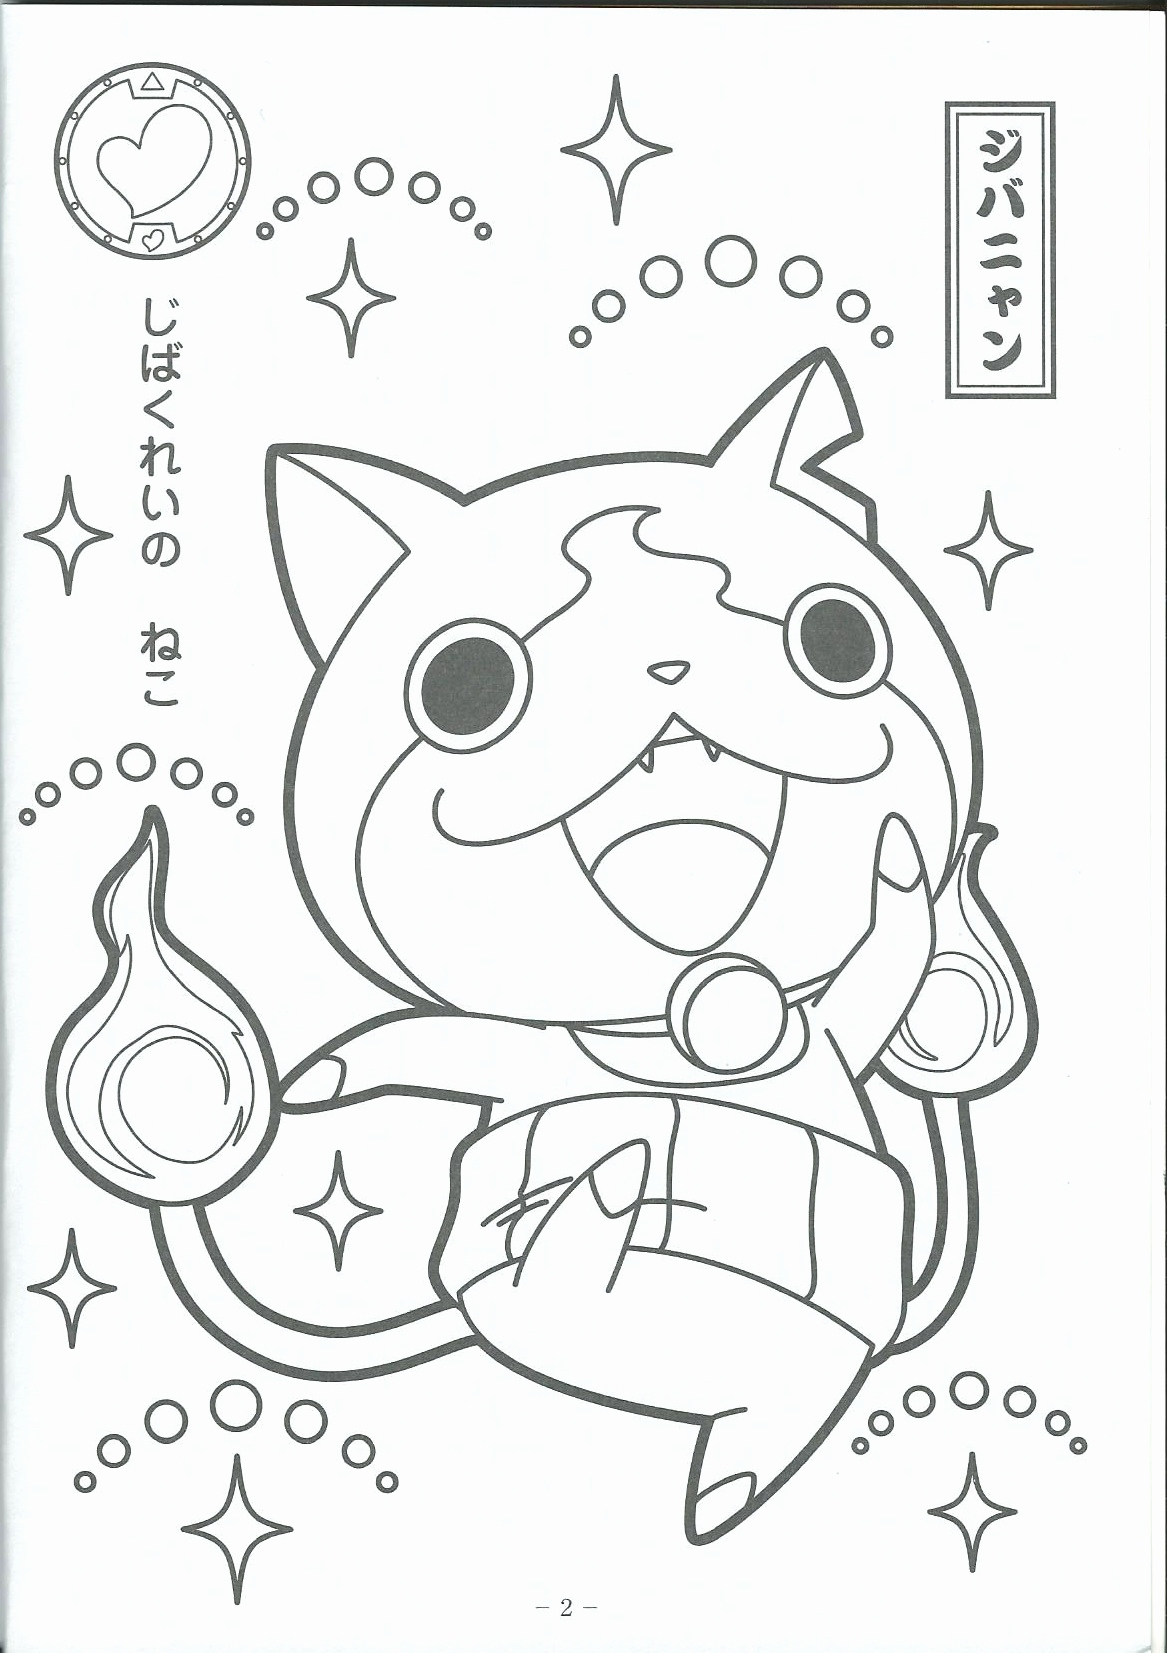 12 Fresh Yo Kai Watch Coloring Pages Graph Coloring Pages Collection Of Yo Kai Watch Coloring Pages to Print to Print